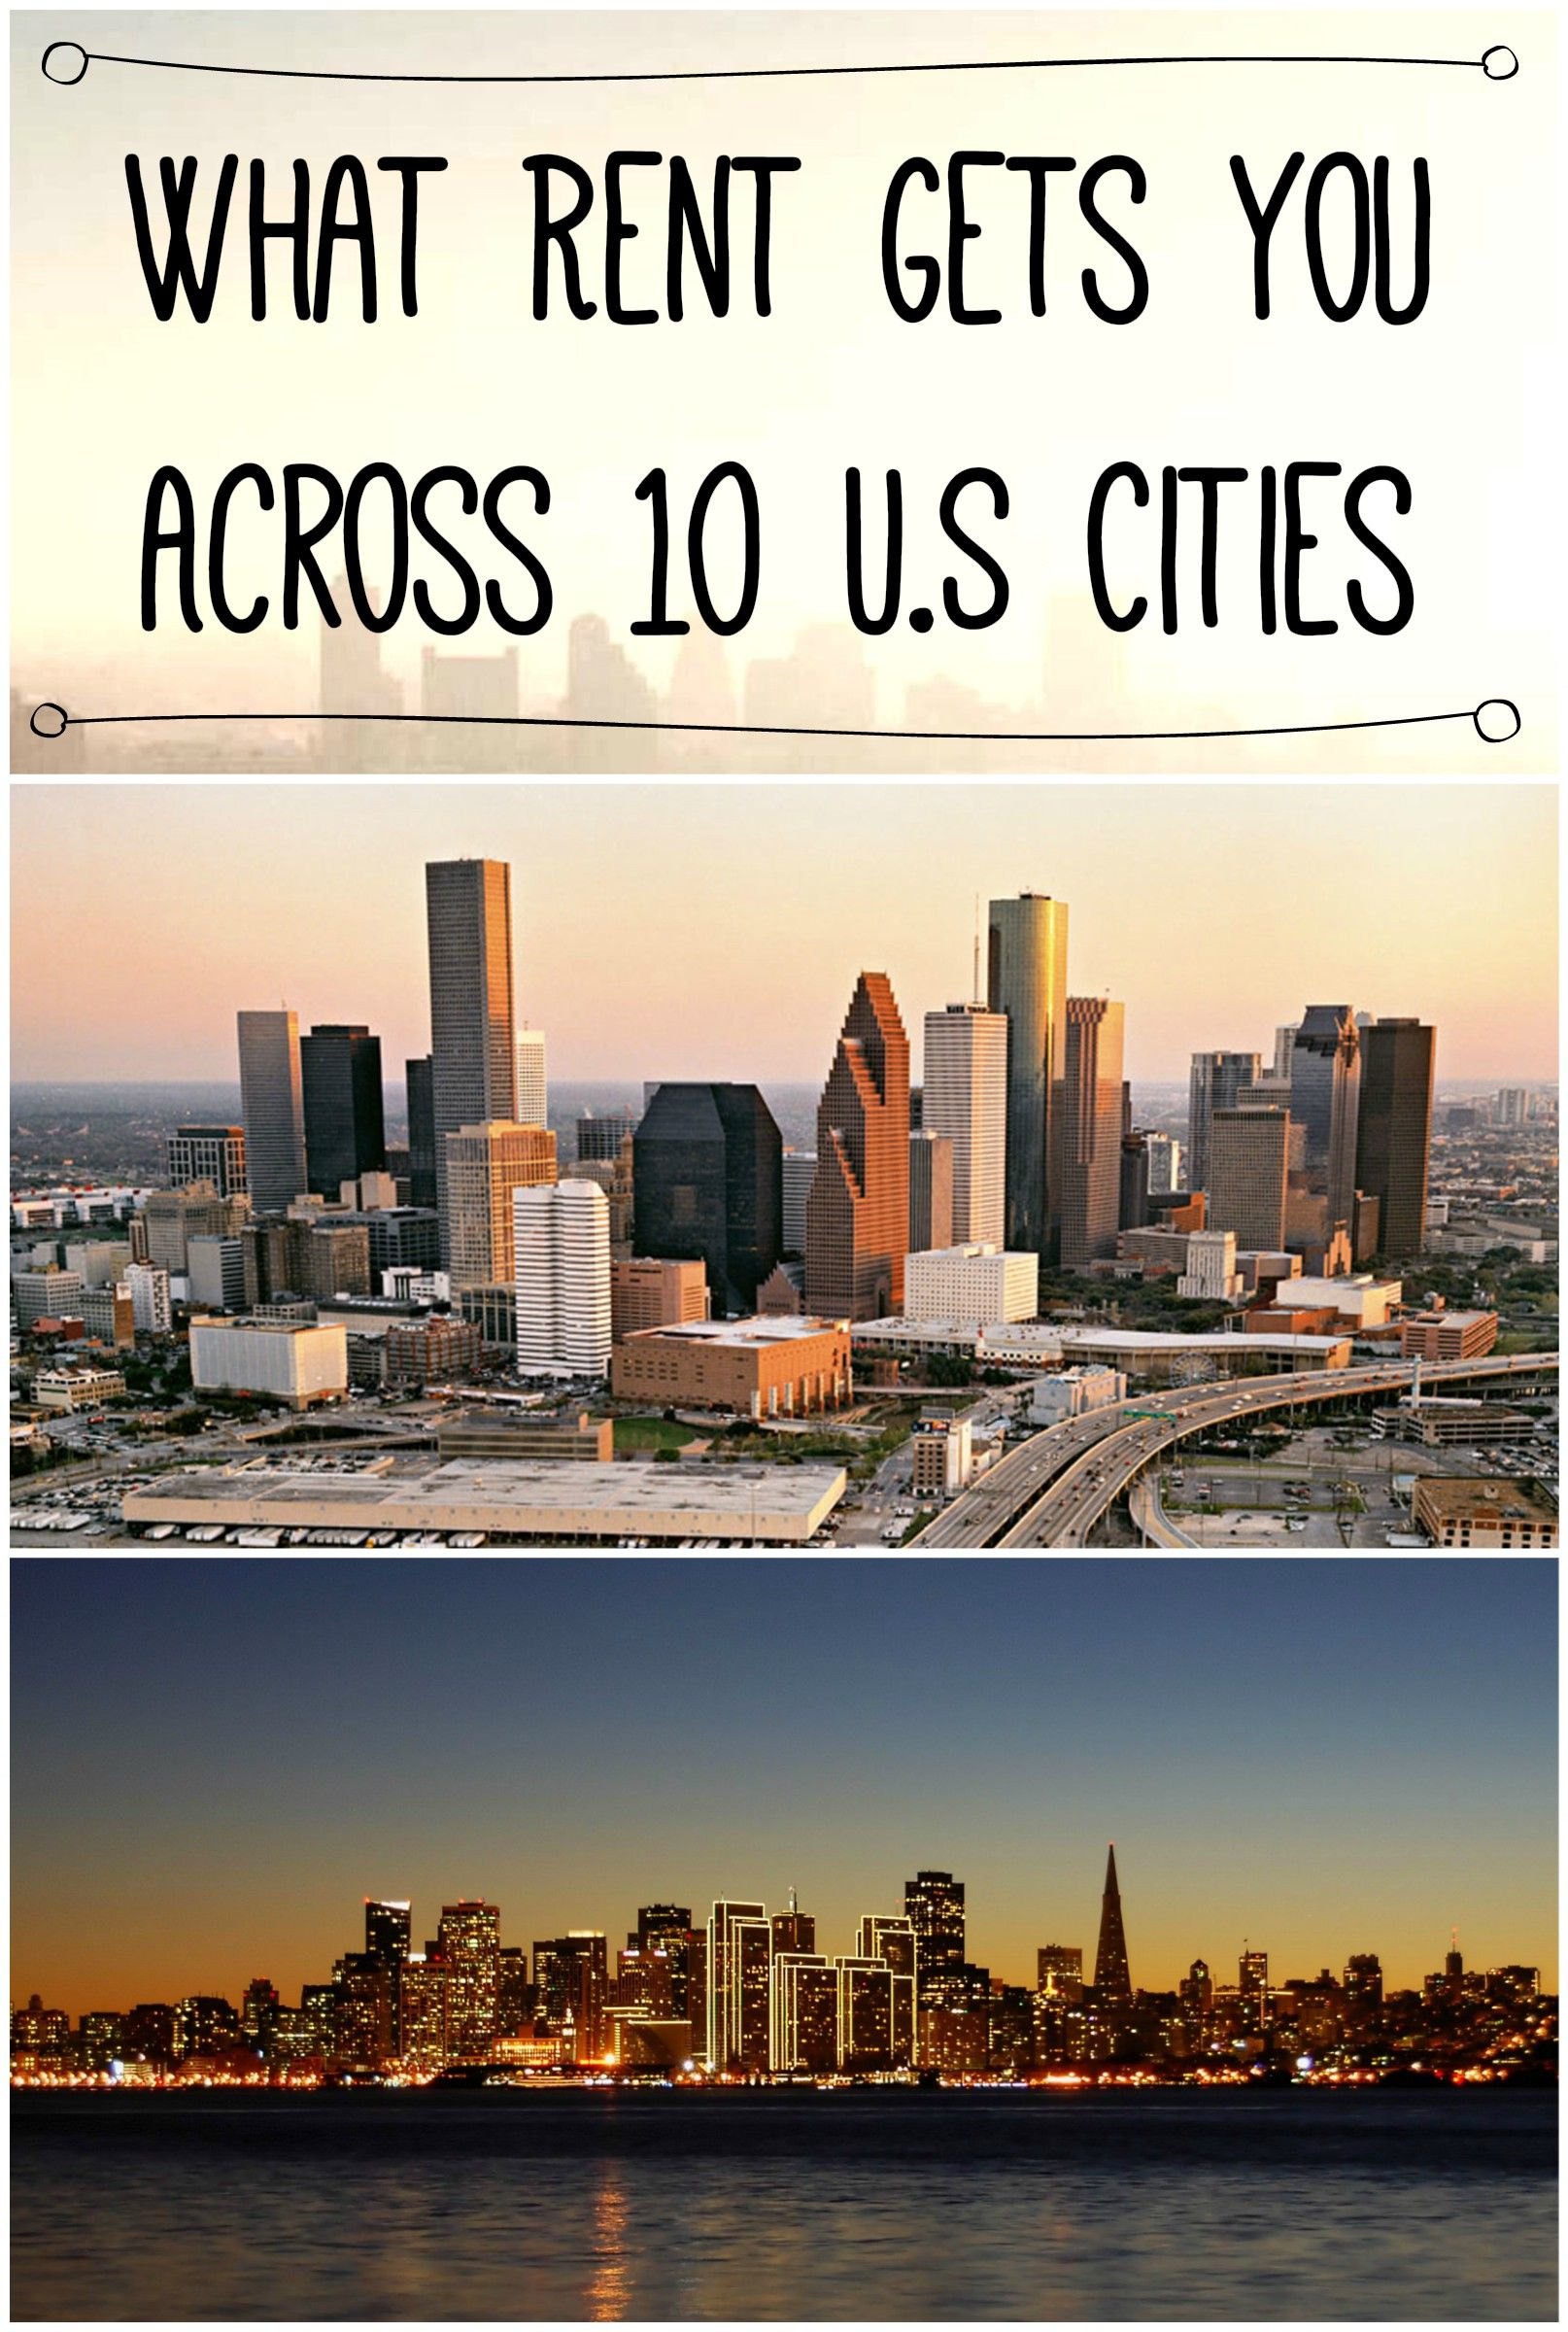 What 1,000 In Rent Gets You Across 10 U.S Cities The